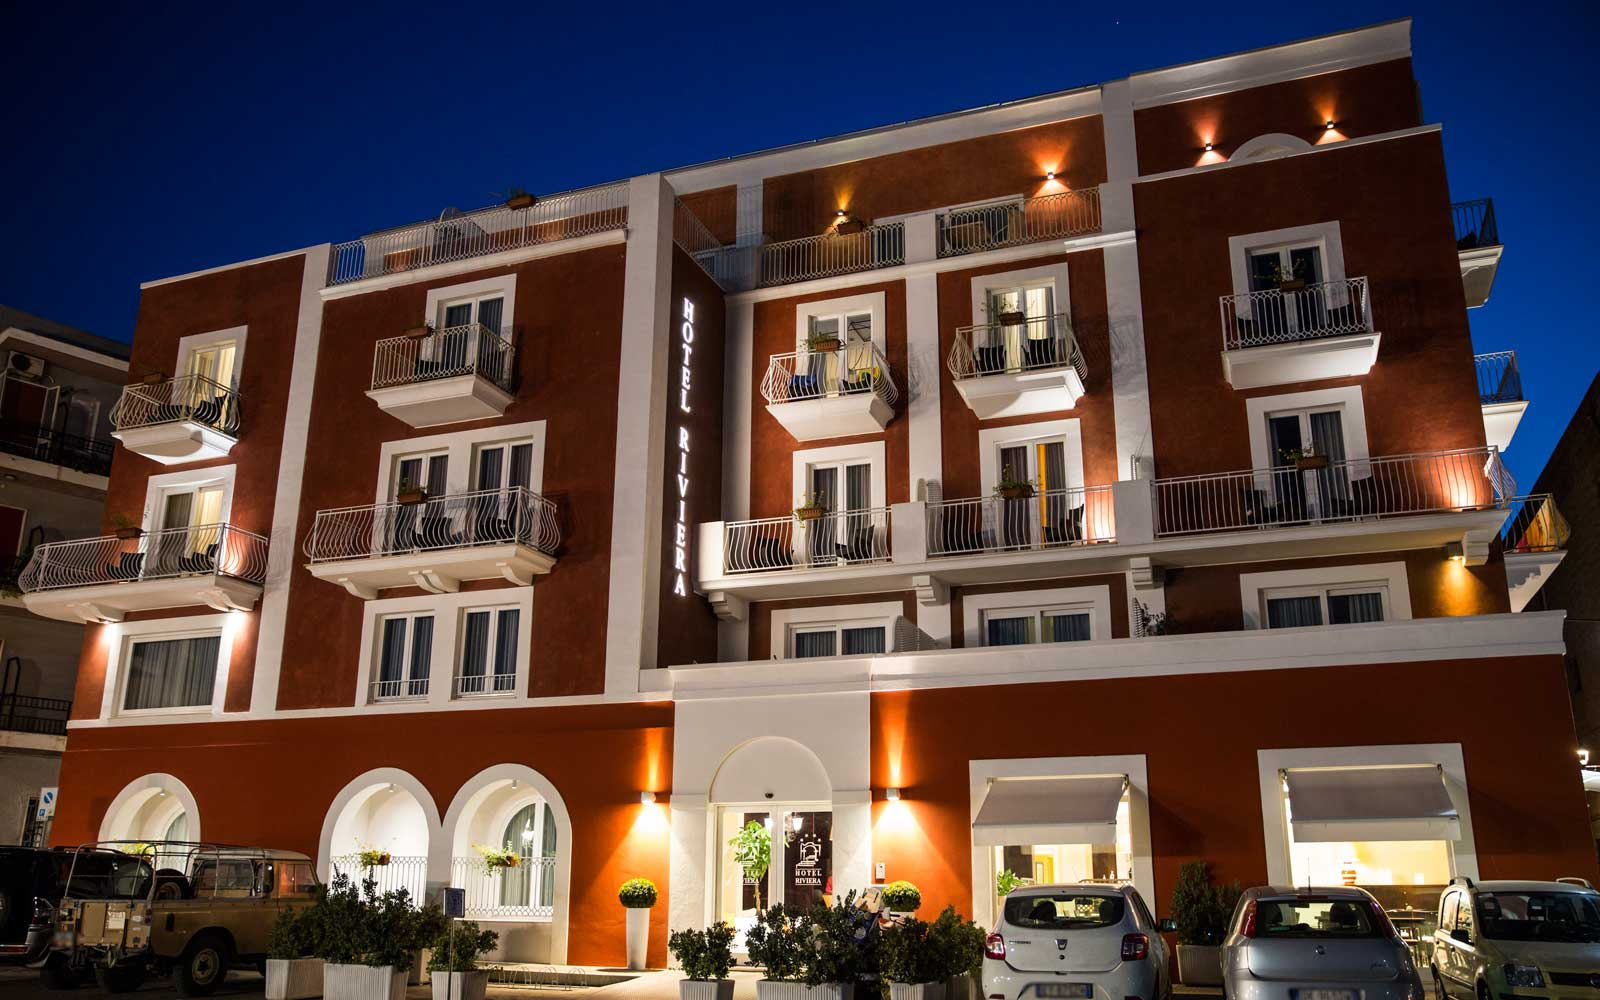 Entrance by Night at Hotel Riviera